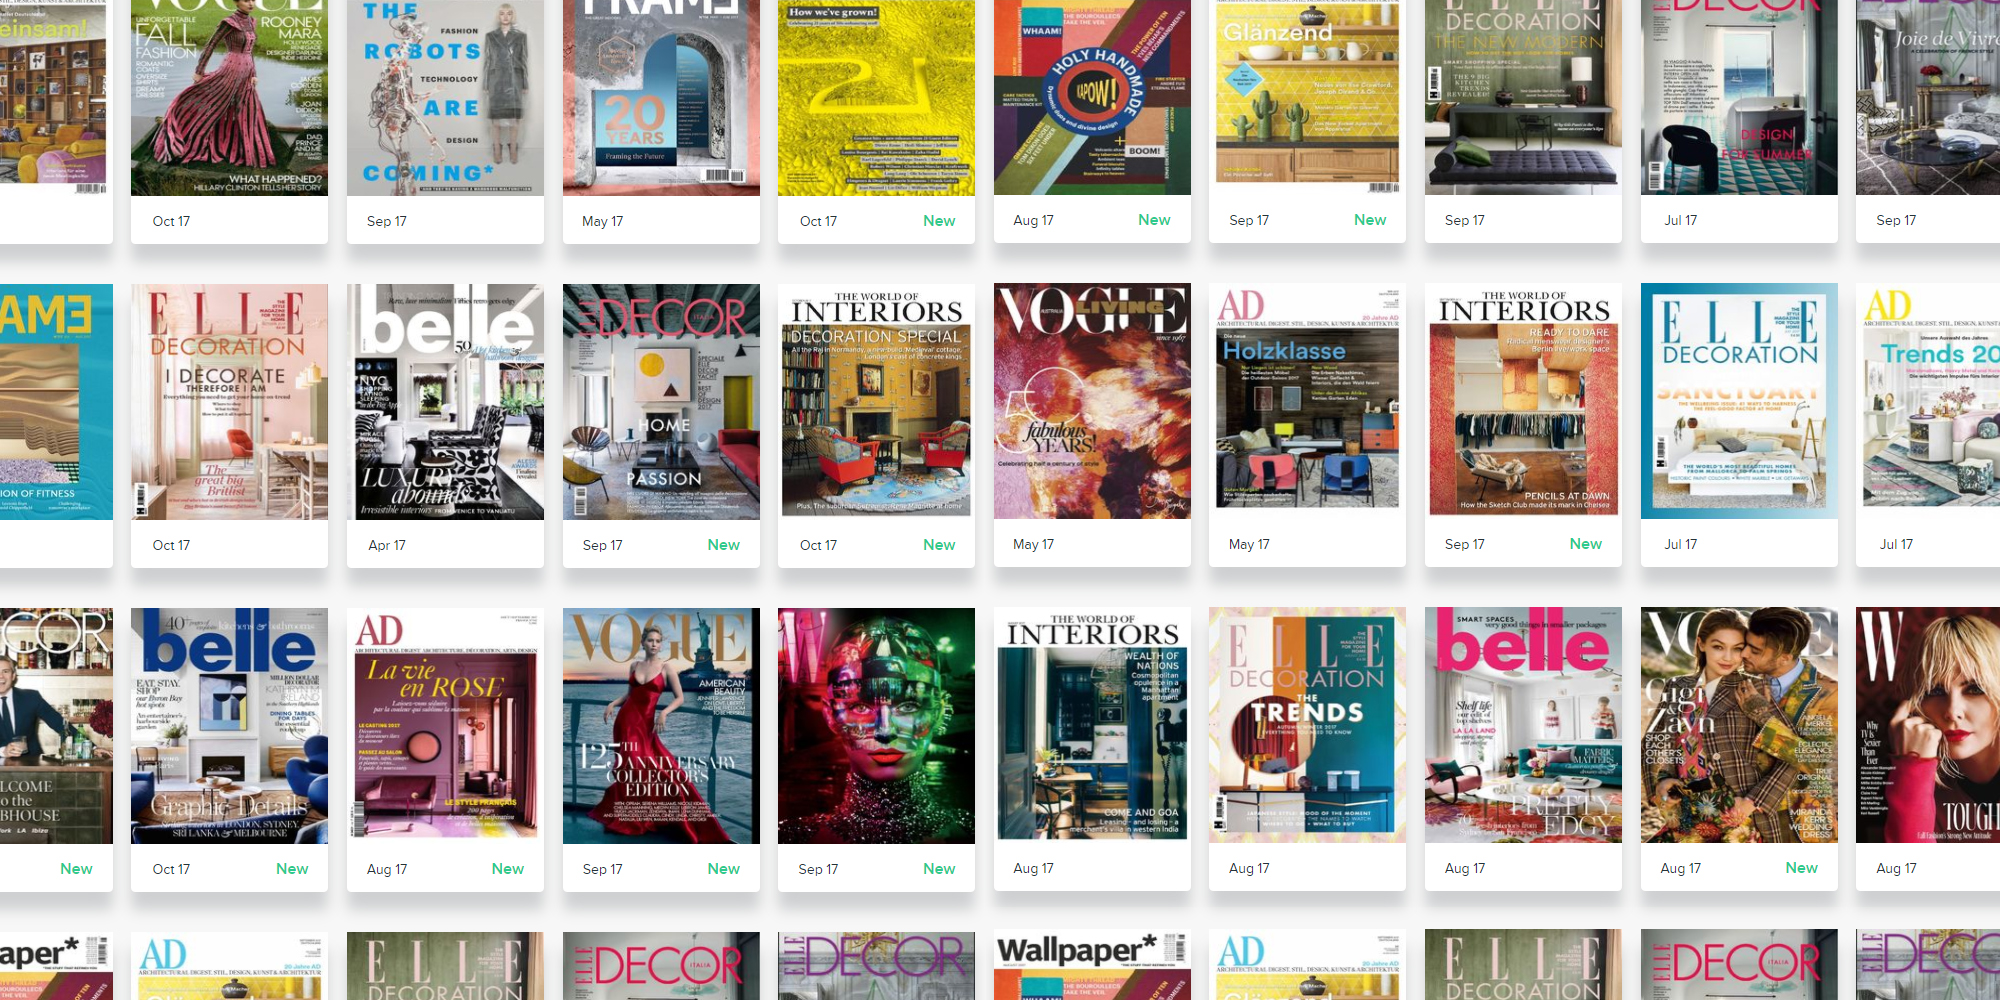 Featuring some of the world's best publications from Wallpaper* to AD, Elle Decor, Vogue and W, stay inspired with Zinio.